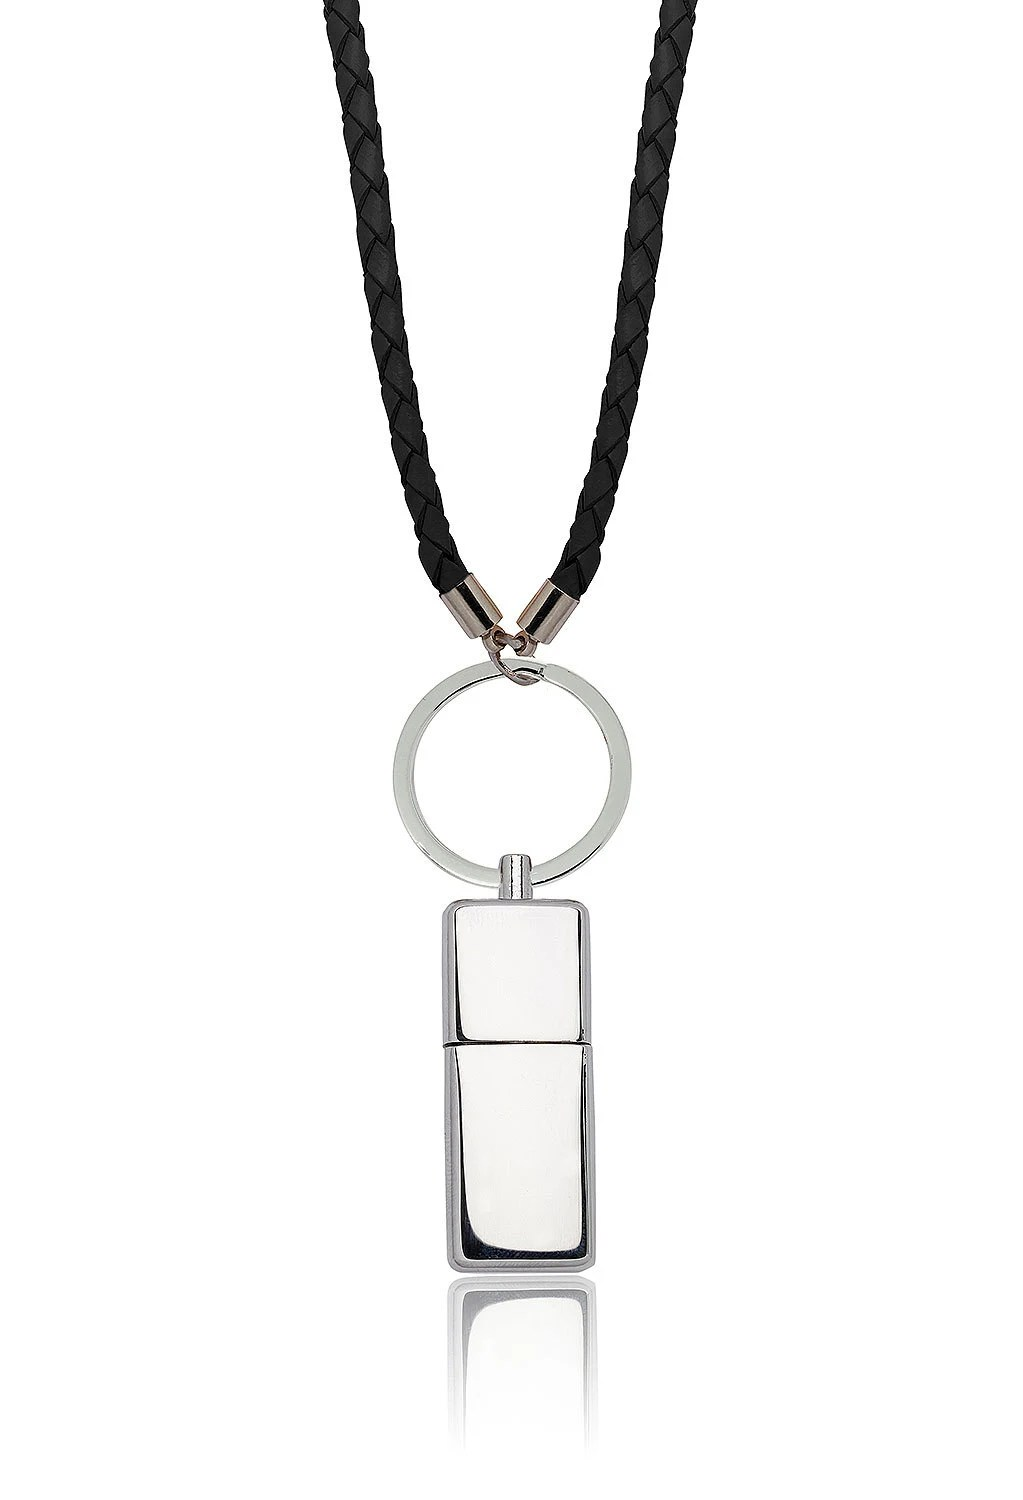 Usb jewelry USB usb necklace Cool gadgets Wearable by